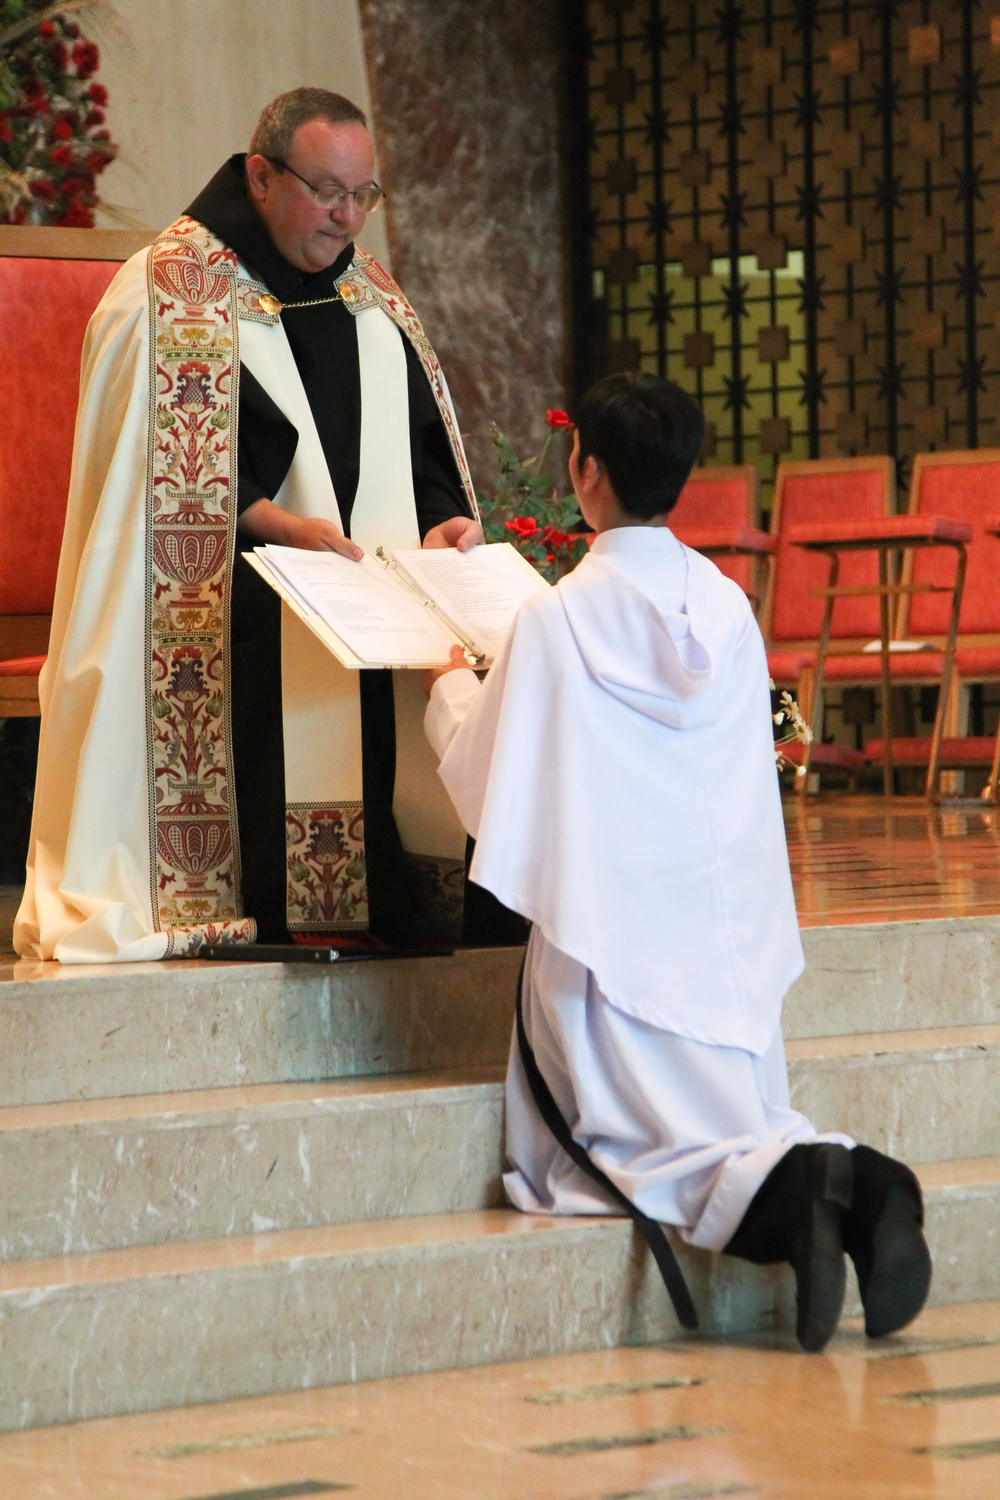 Br. Richie professed Simple Vows in August 2012